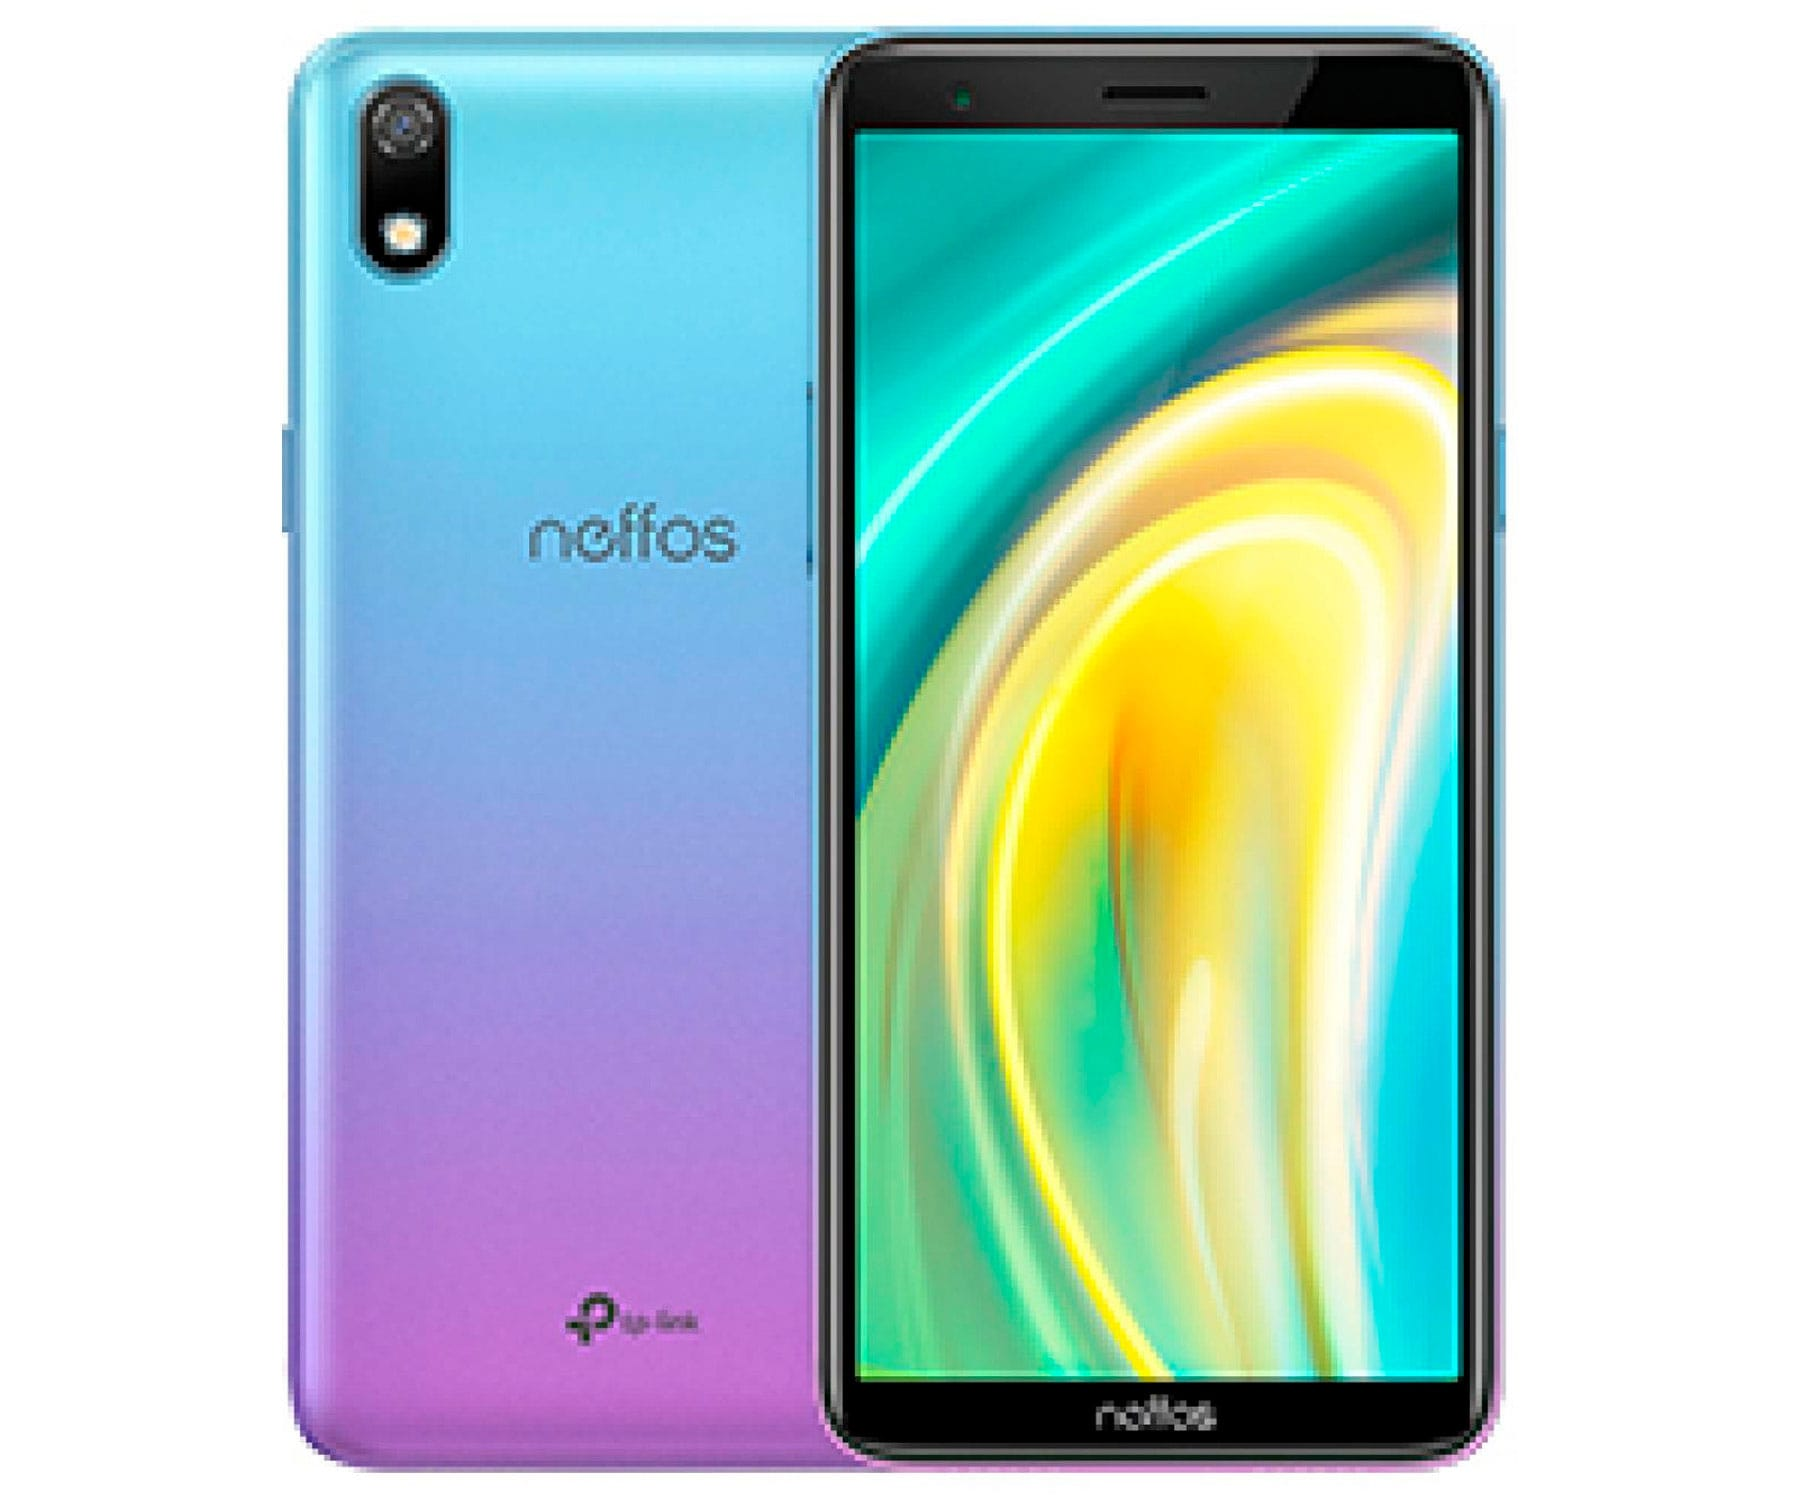 TP-LINK NEFFOS A5 MONET MÓVIL 3G DUAL SIM 5.99 IPS HD+/4CORE/16GB/1GB RAM/5MP/2MP